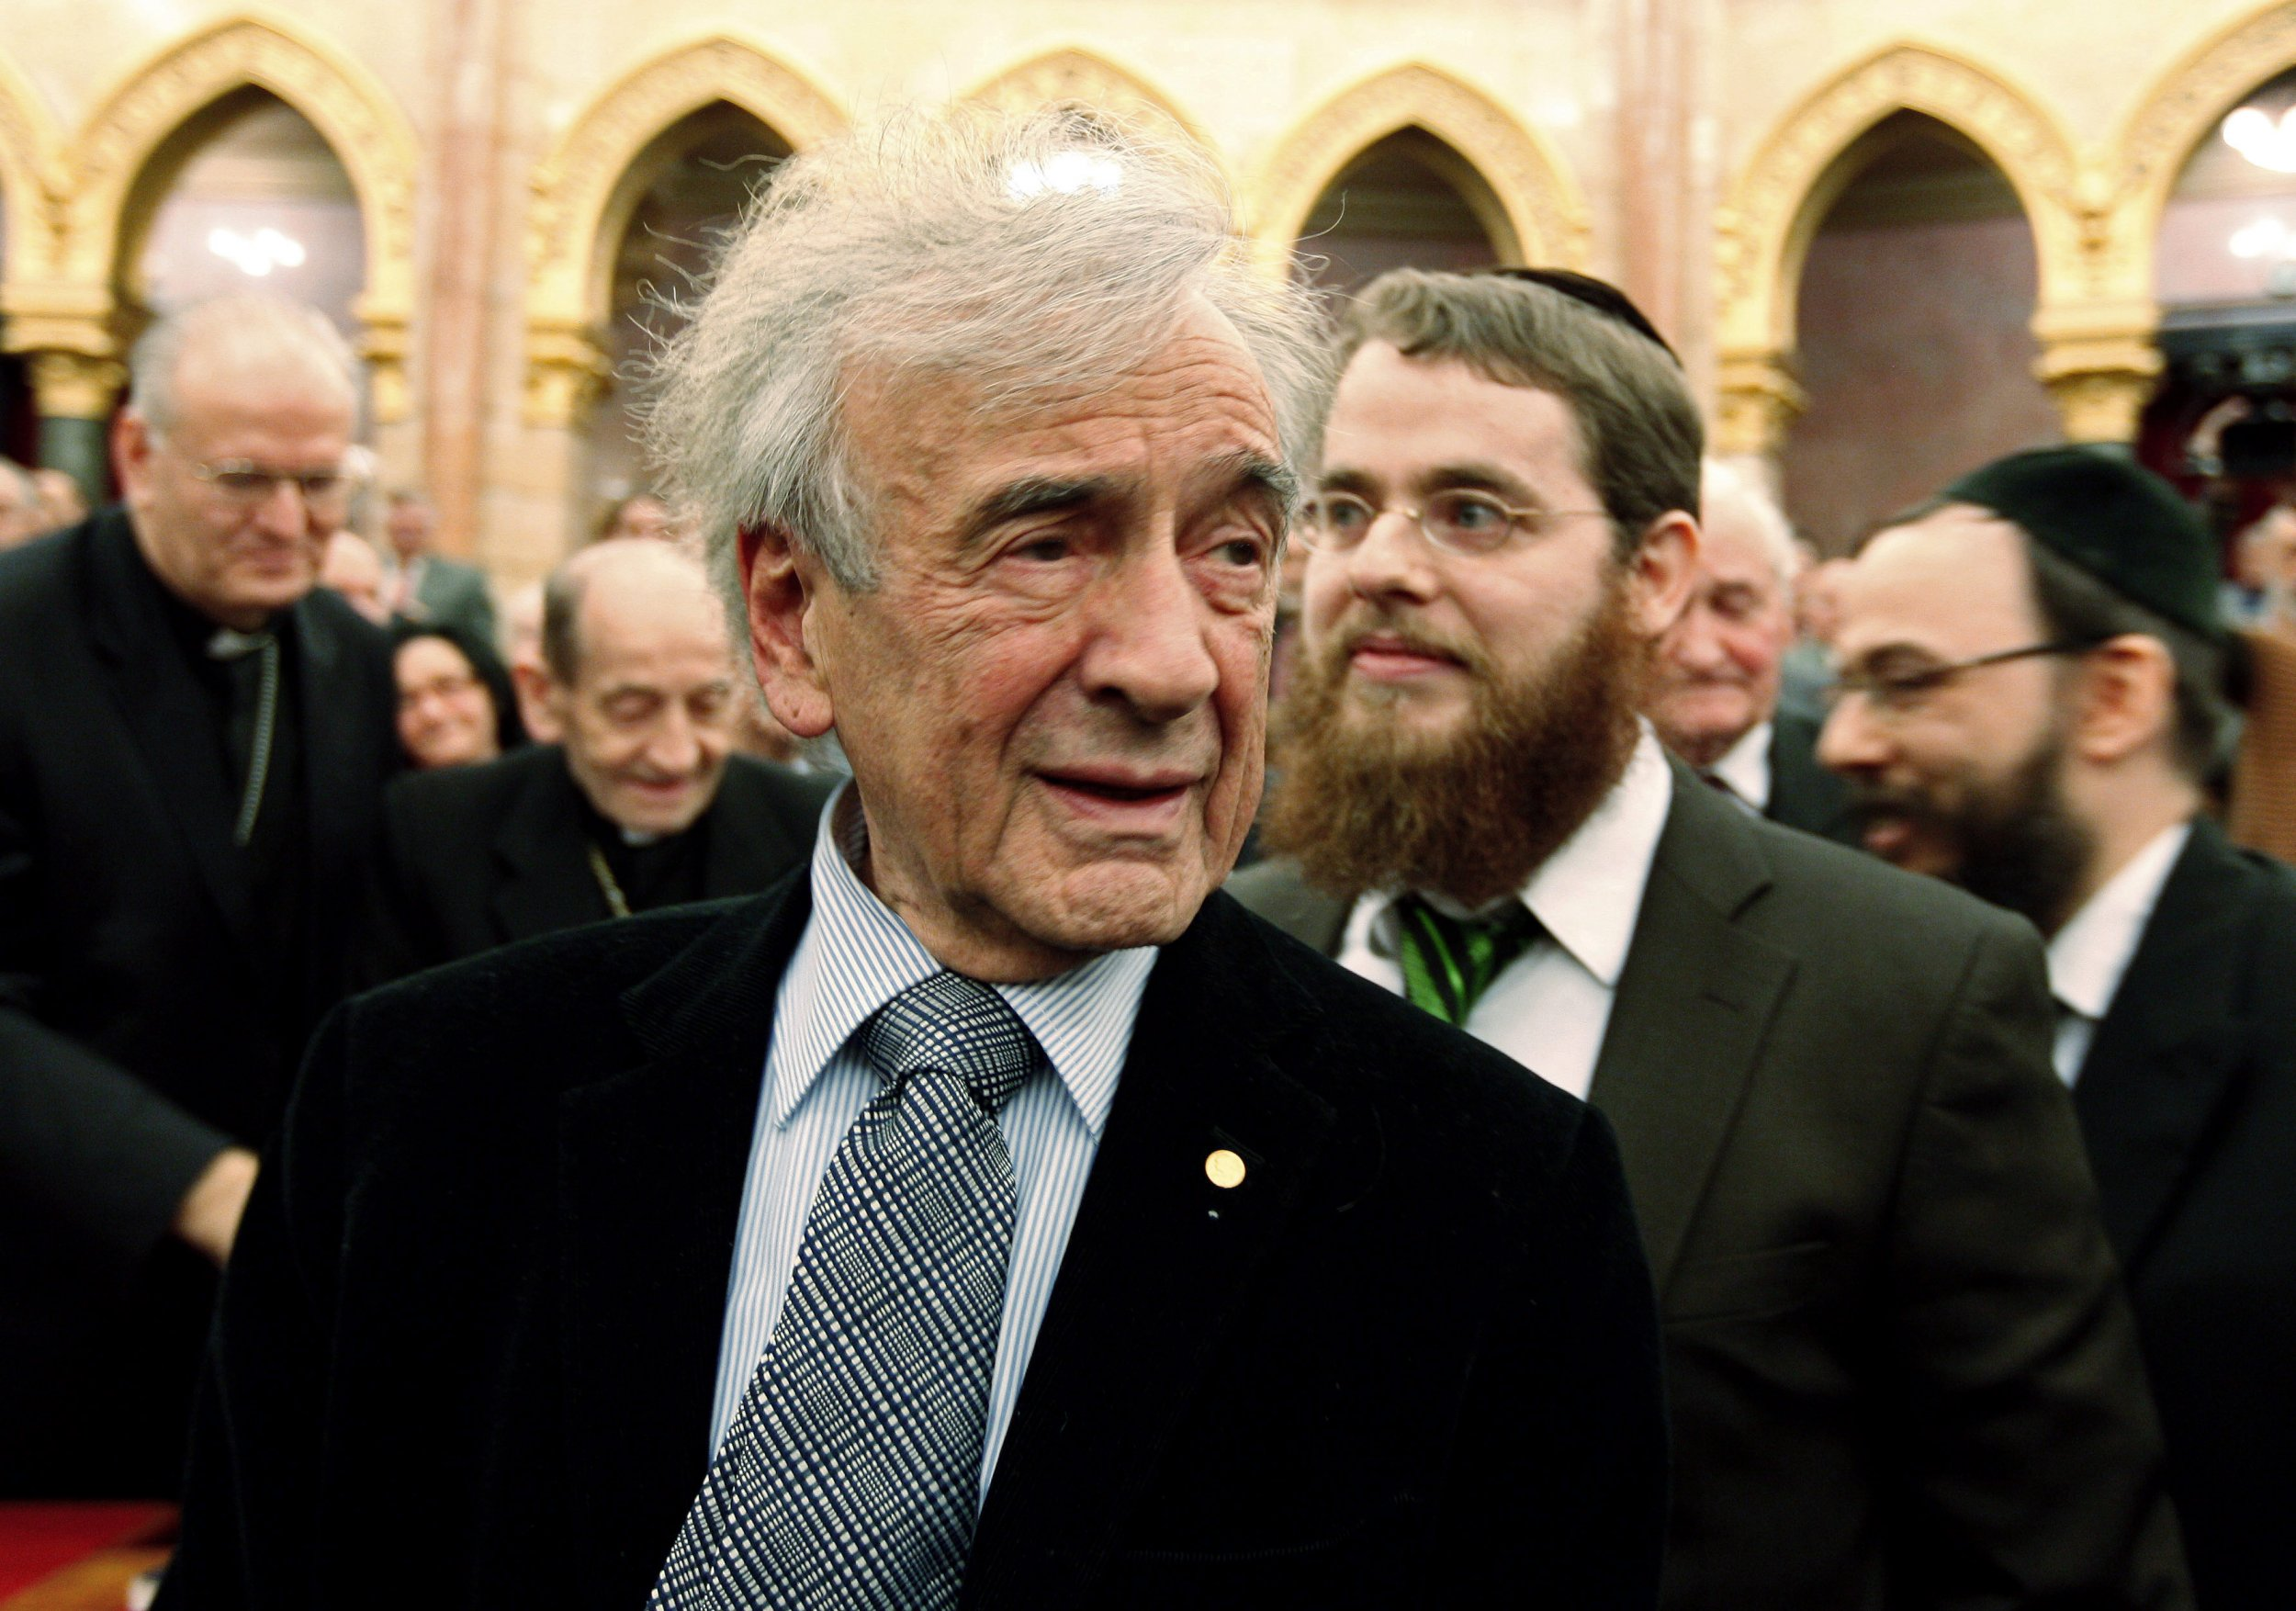 What Did Donald Trump and Elie Wiesel Discuss Over Lunch?